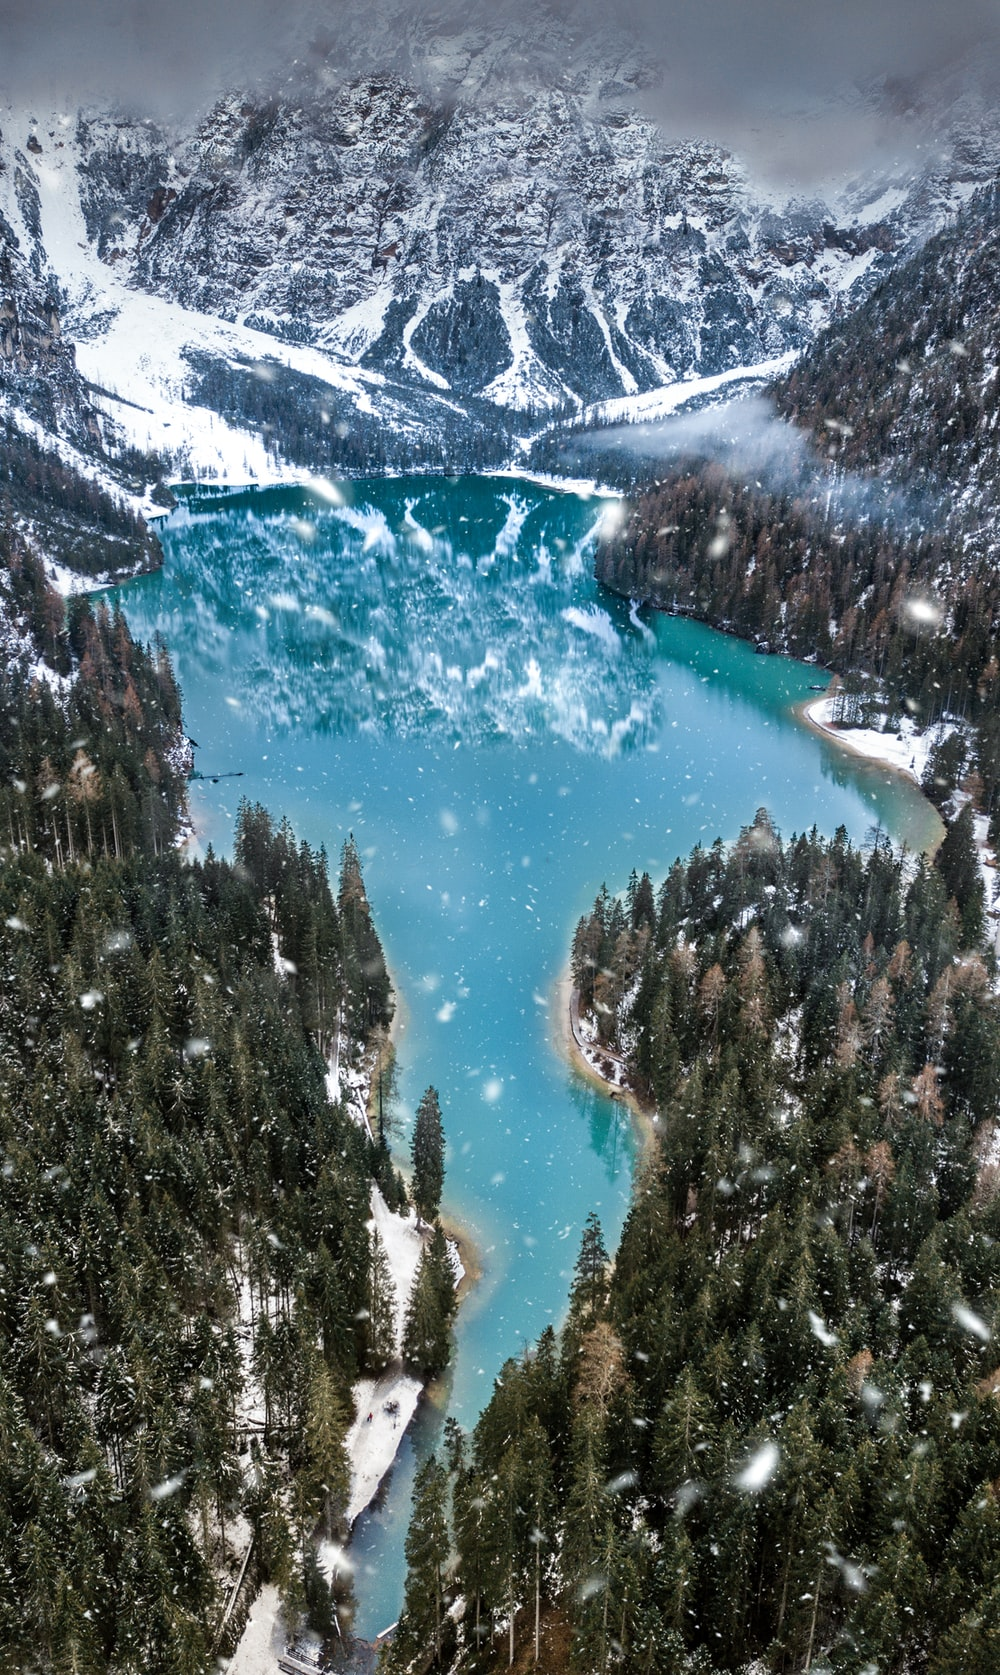 aerial photo of snow covered mountain near body of water